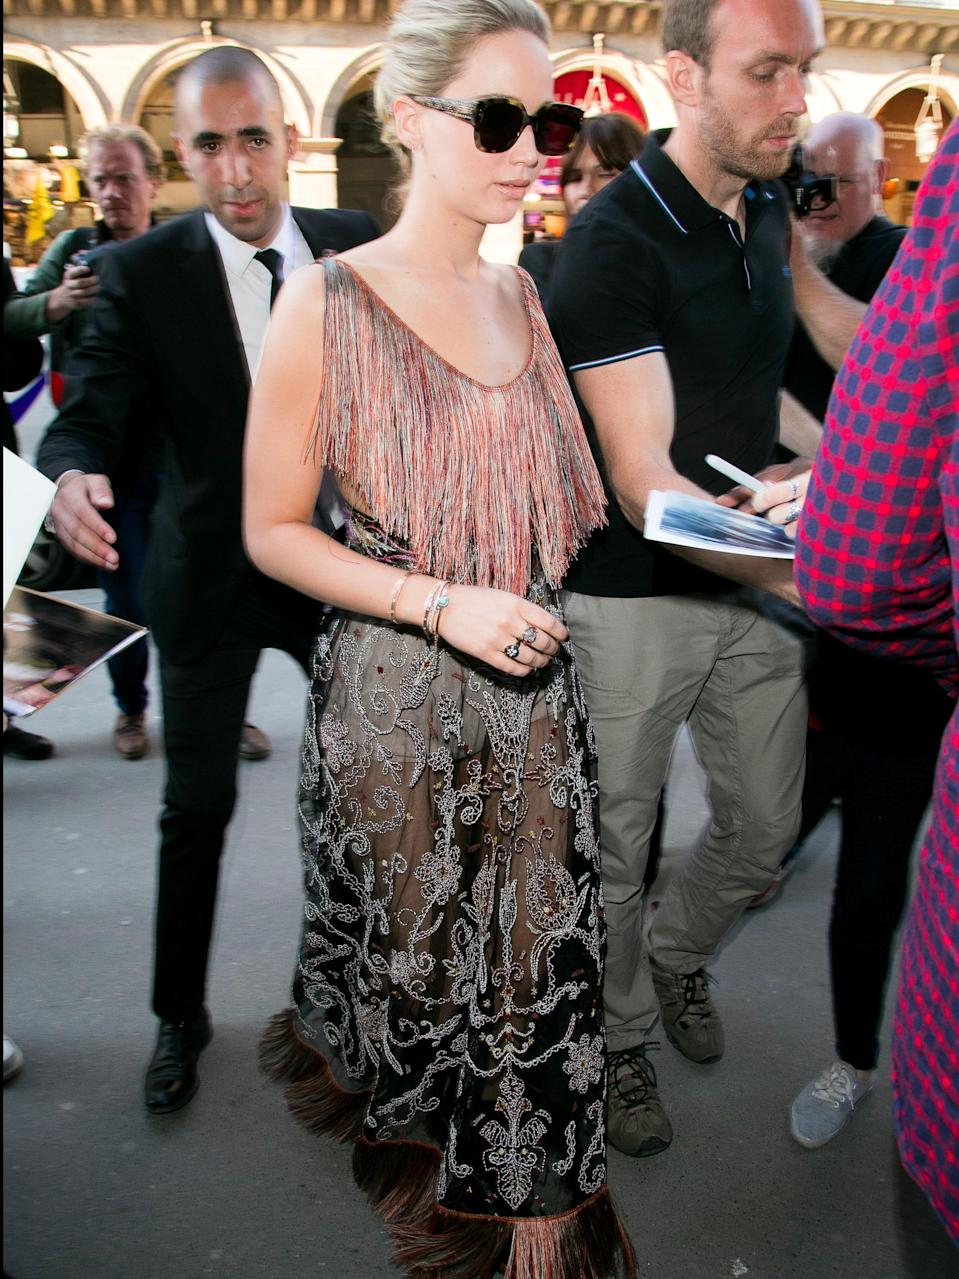 J-Law stepped out in this killer sheer skirt on Monday.